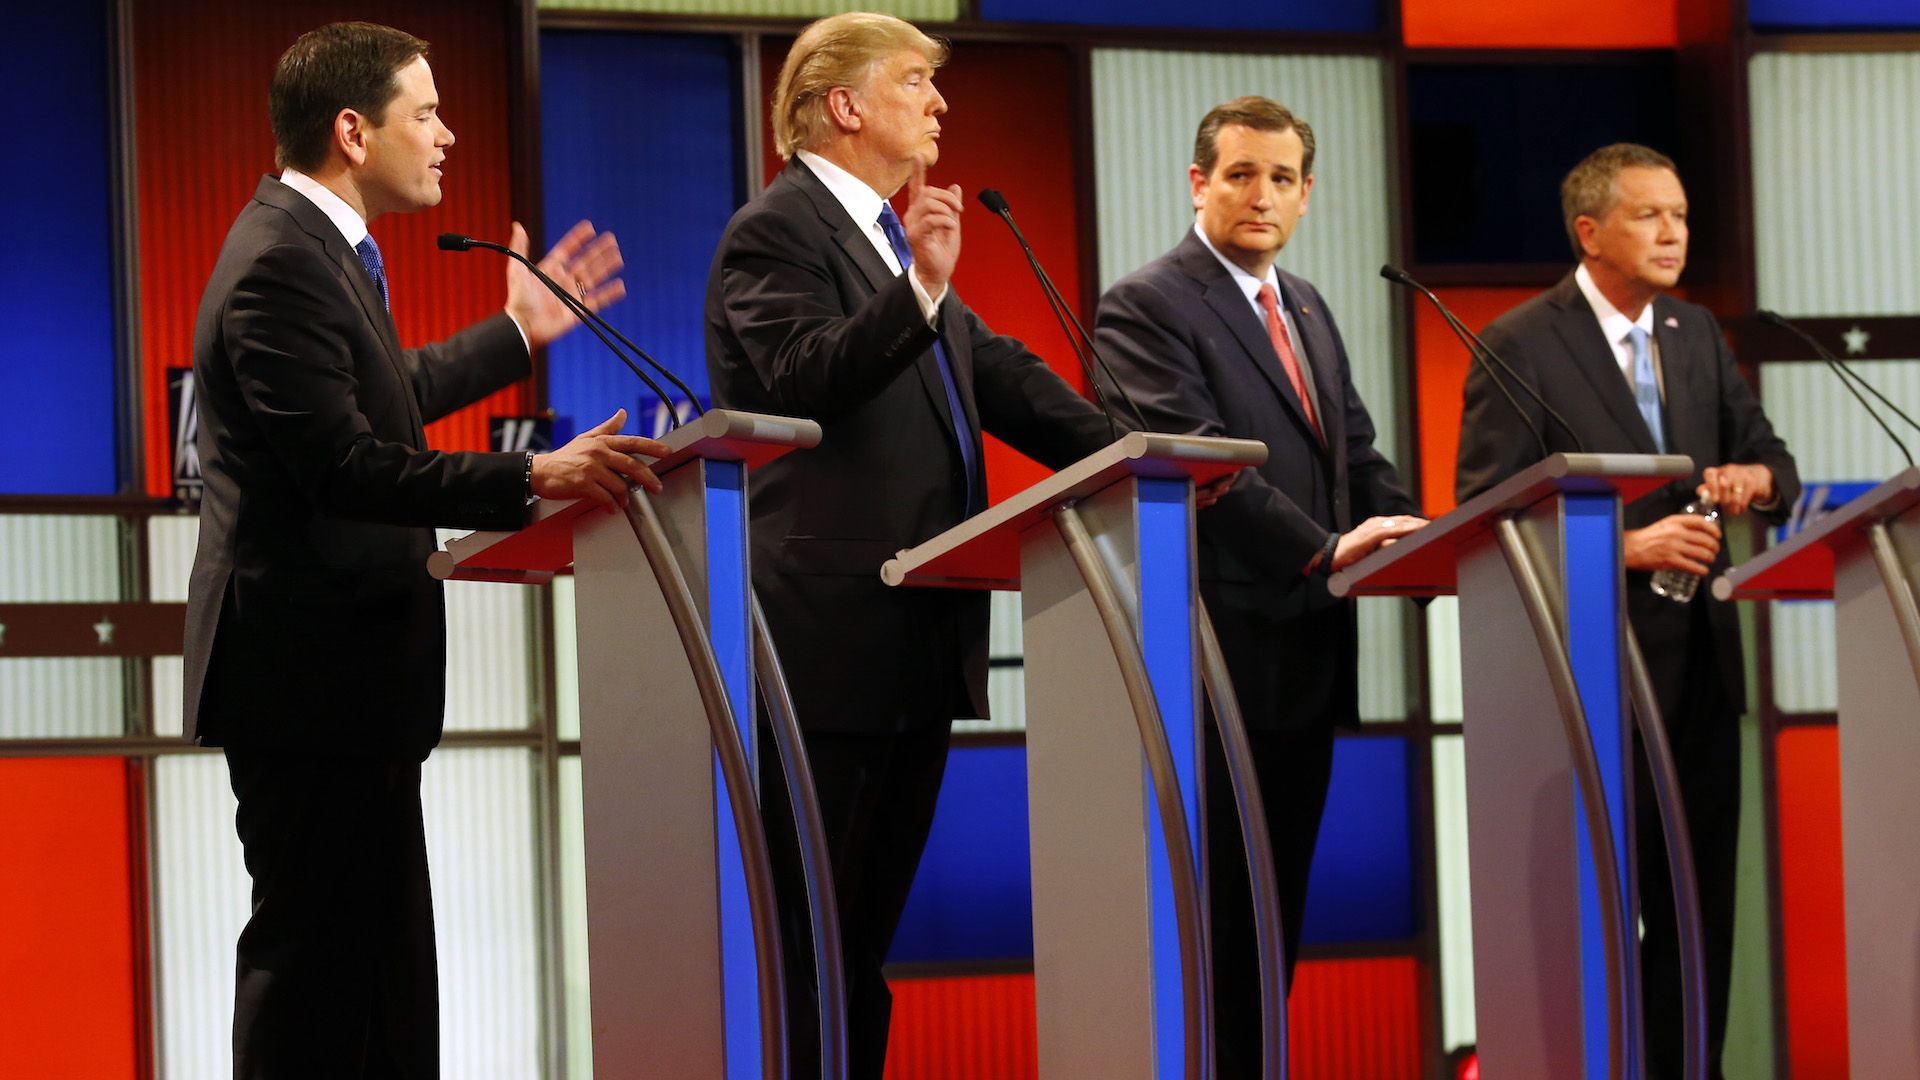 gop candidates pledge to support whoever is the nominee even